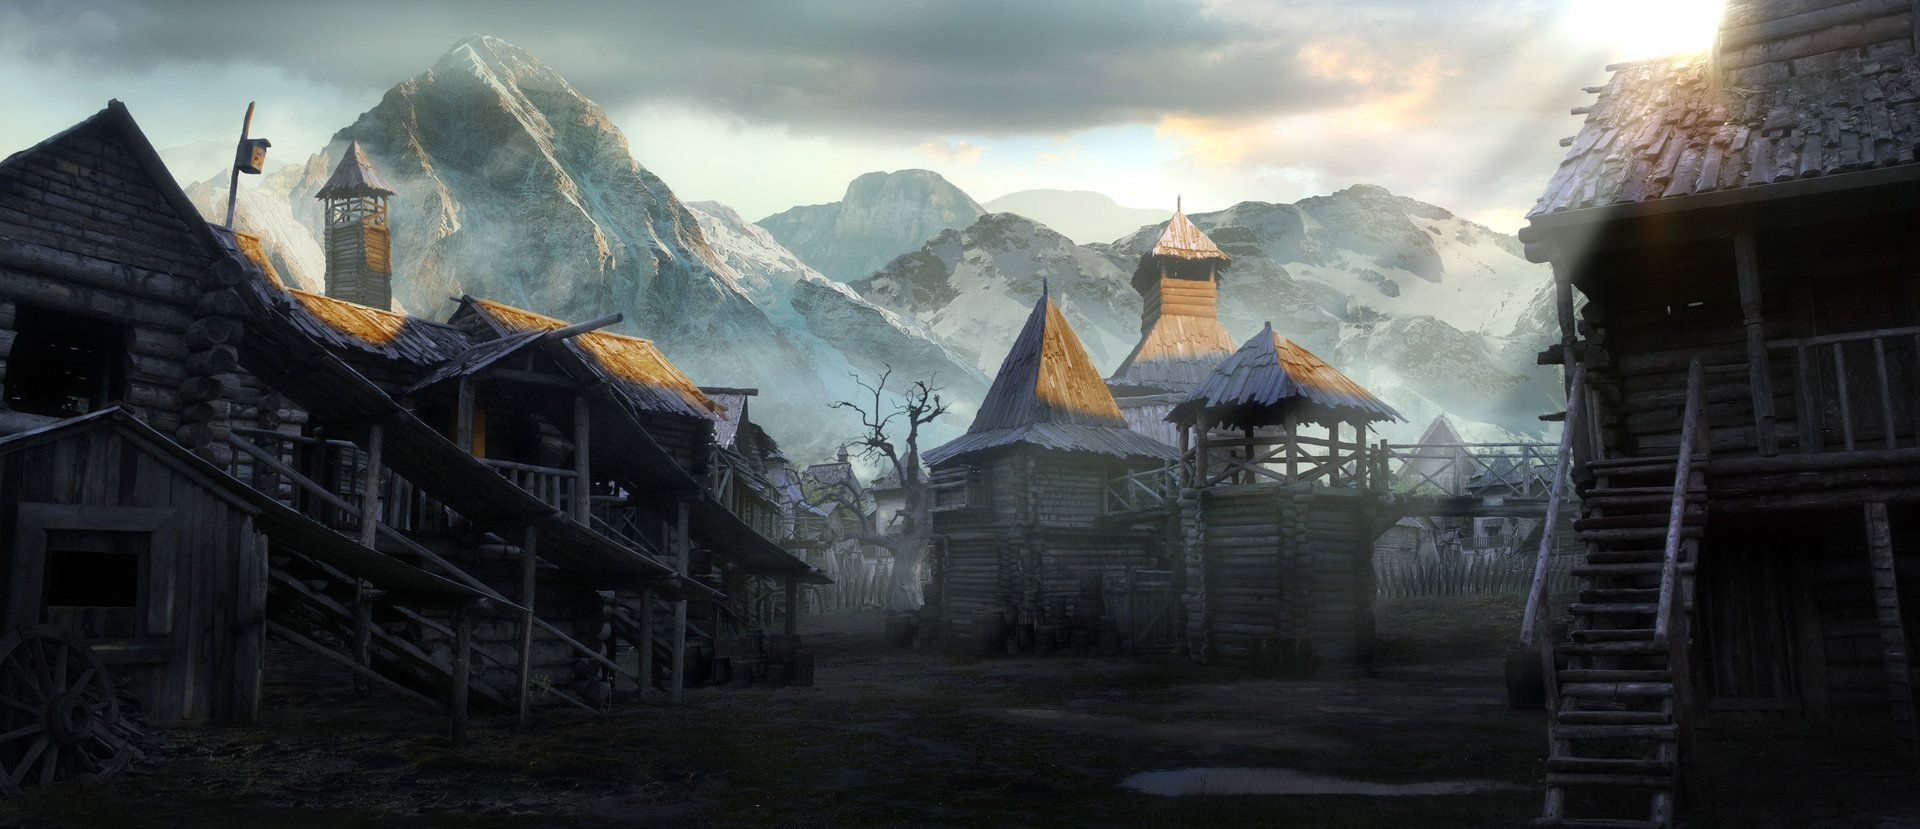 Pin by Kris on inspiration settings (worldbuilding